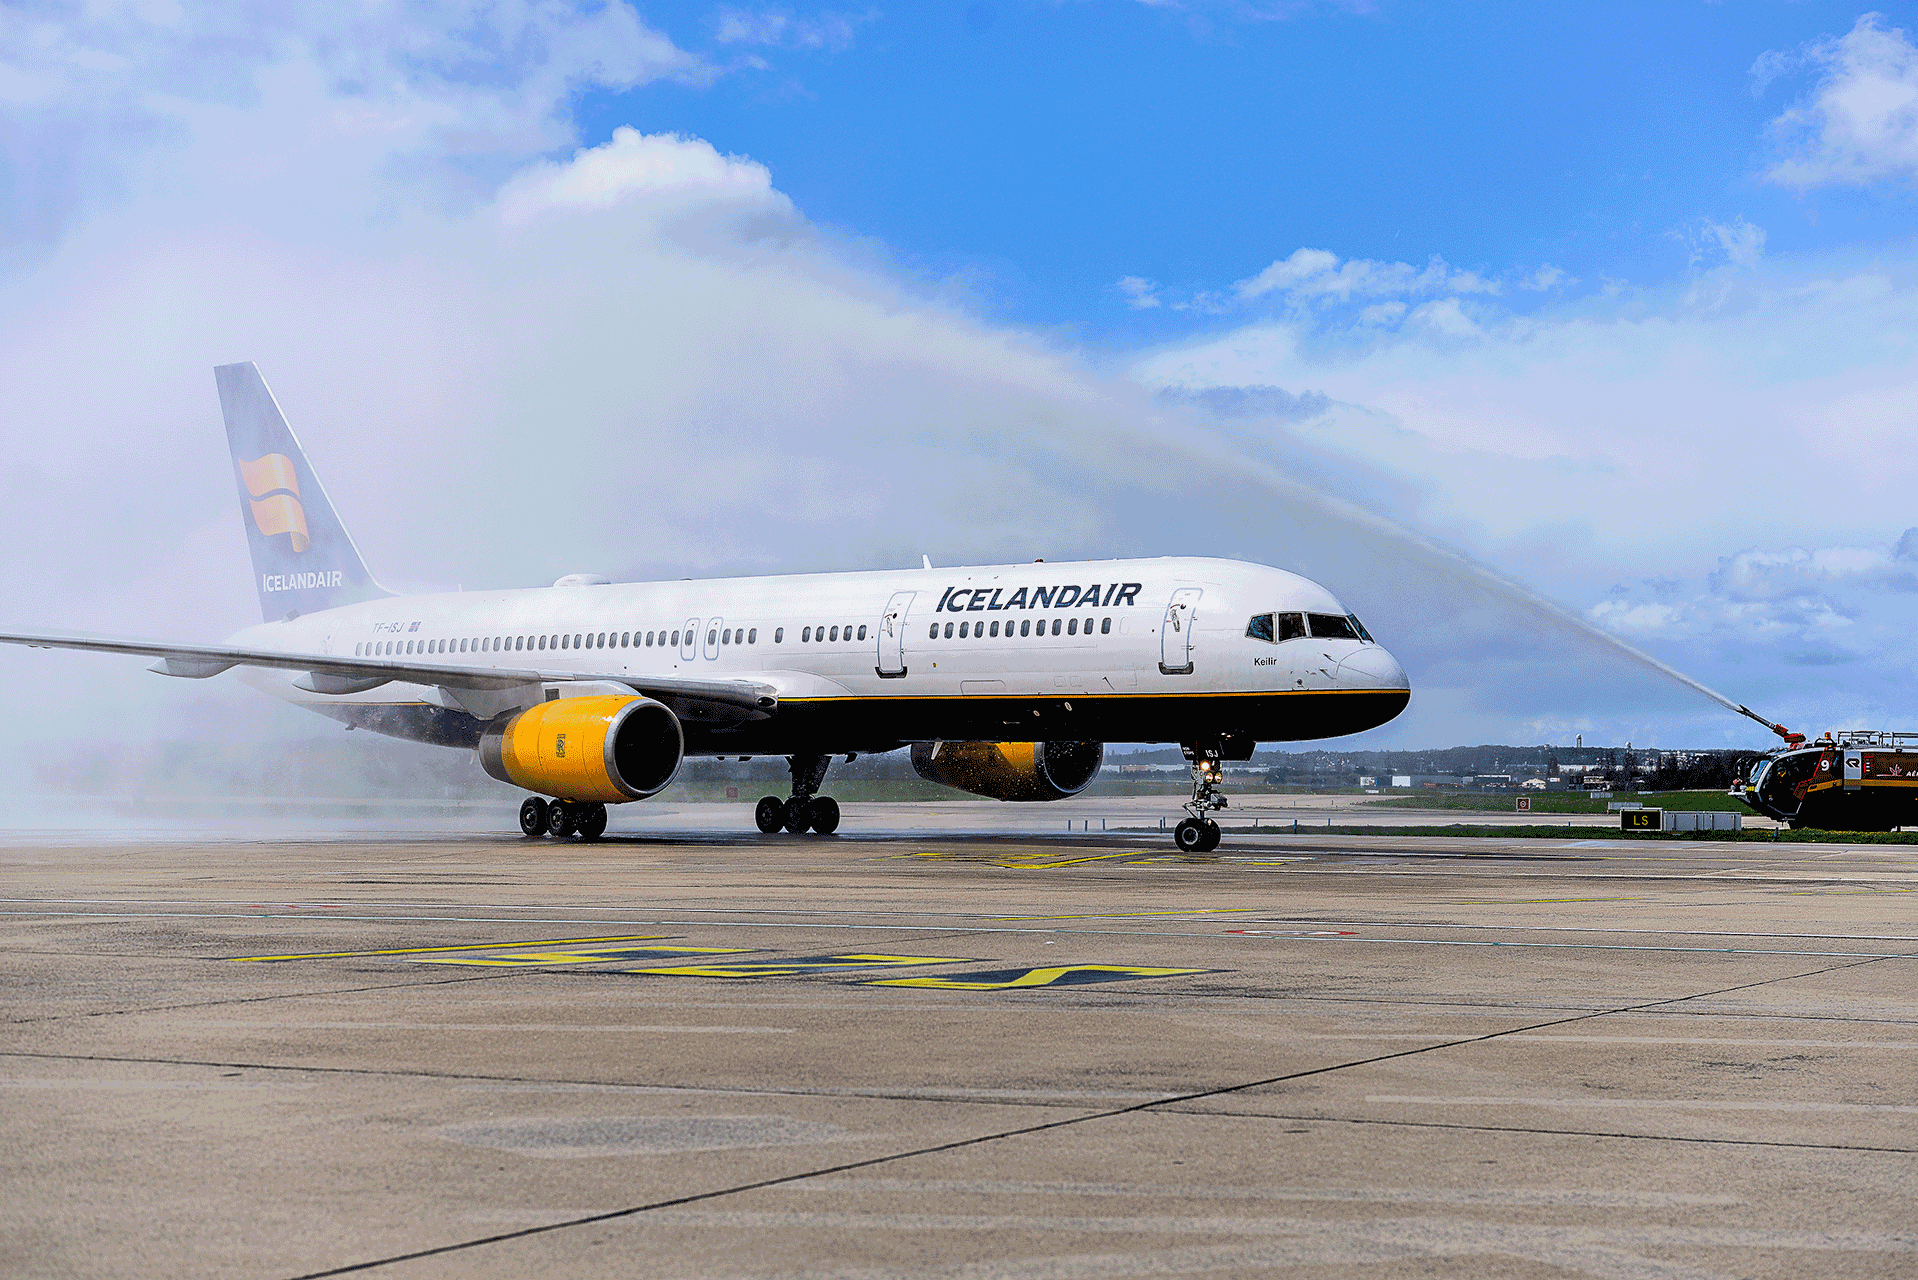 photographe-evenementiel-ile-de-france-icelandair